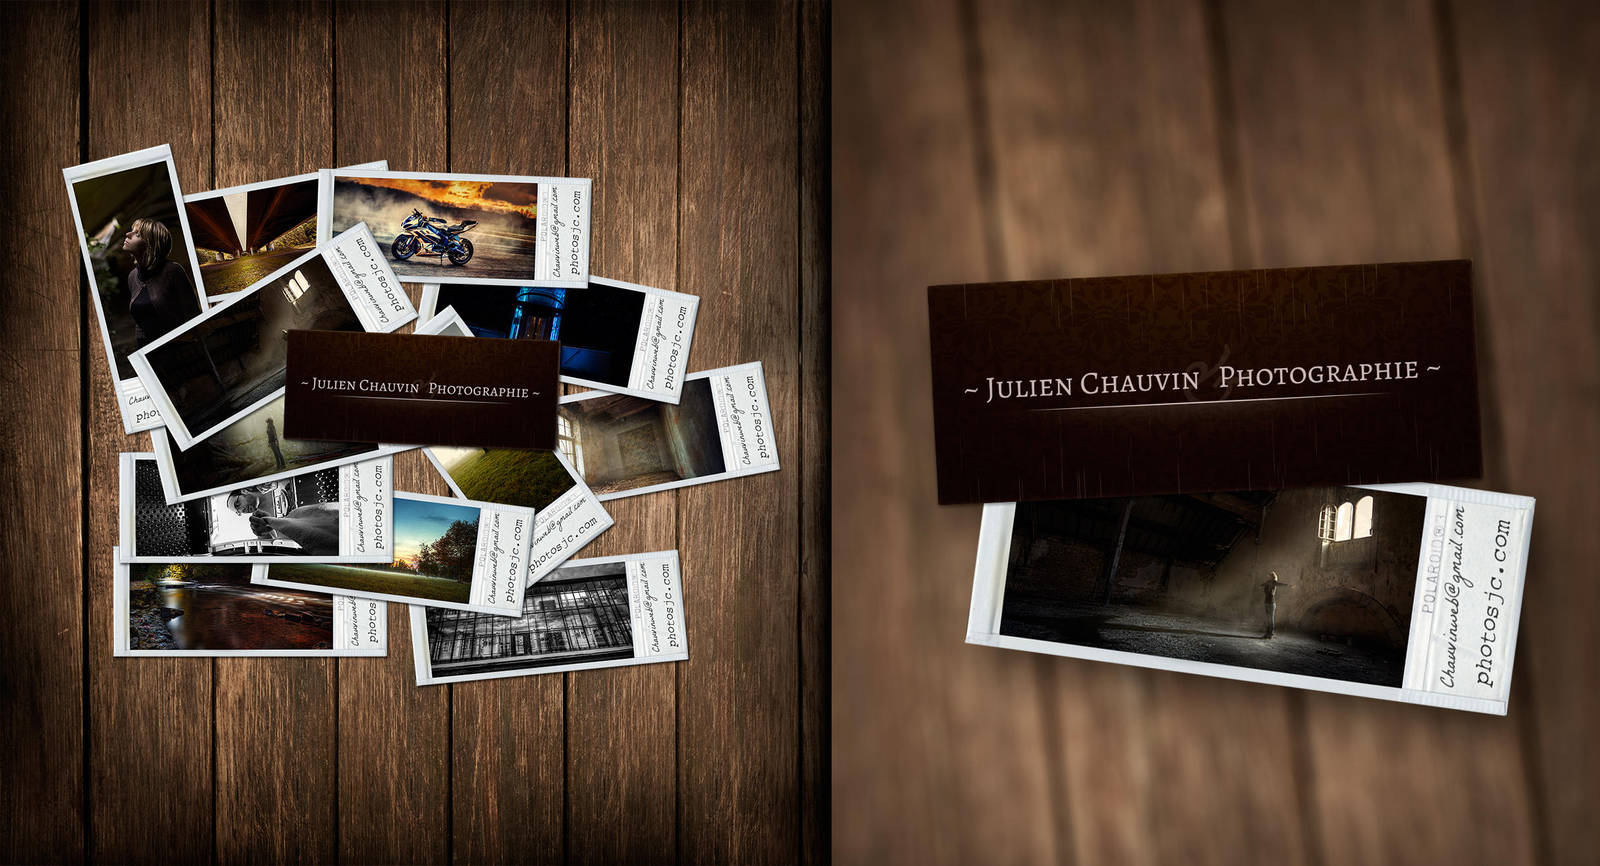 New business cards (Minimalist style) by k-simir